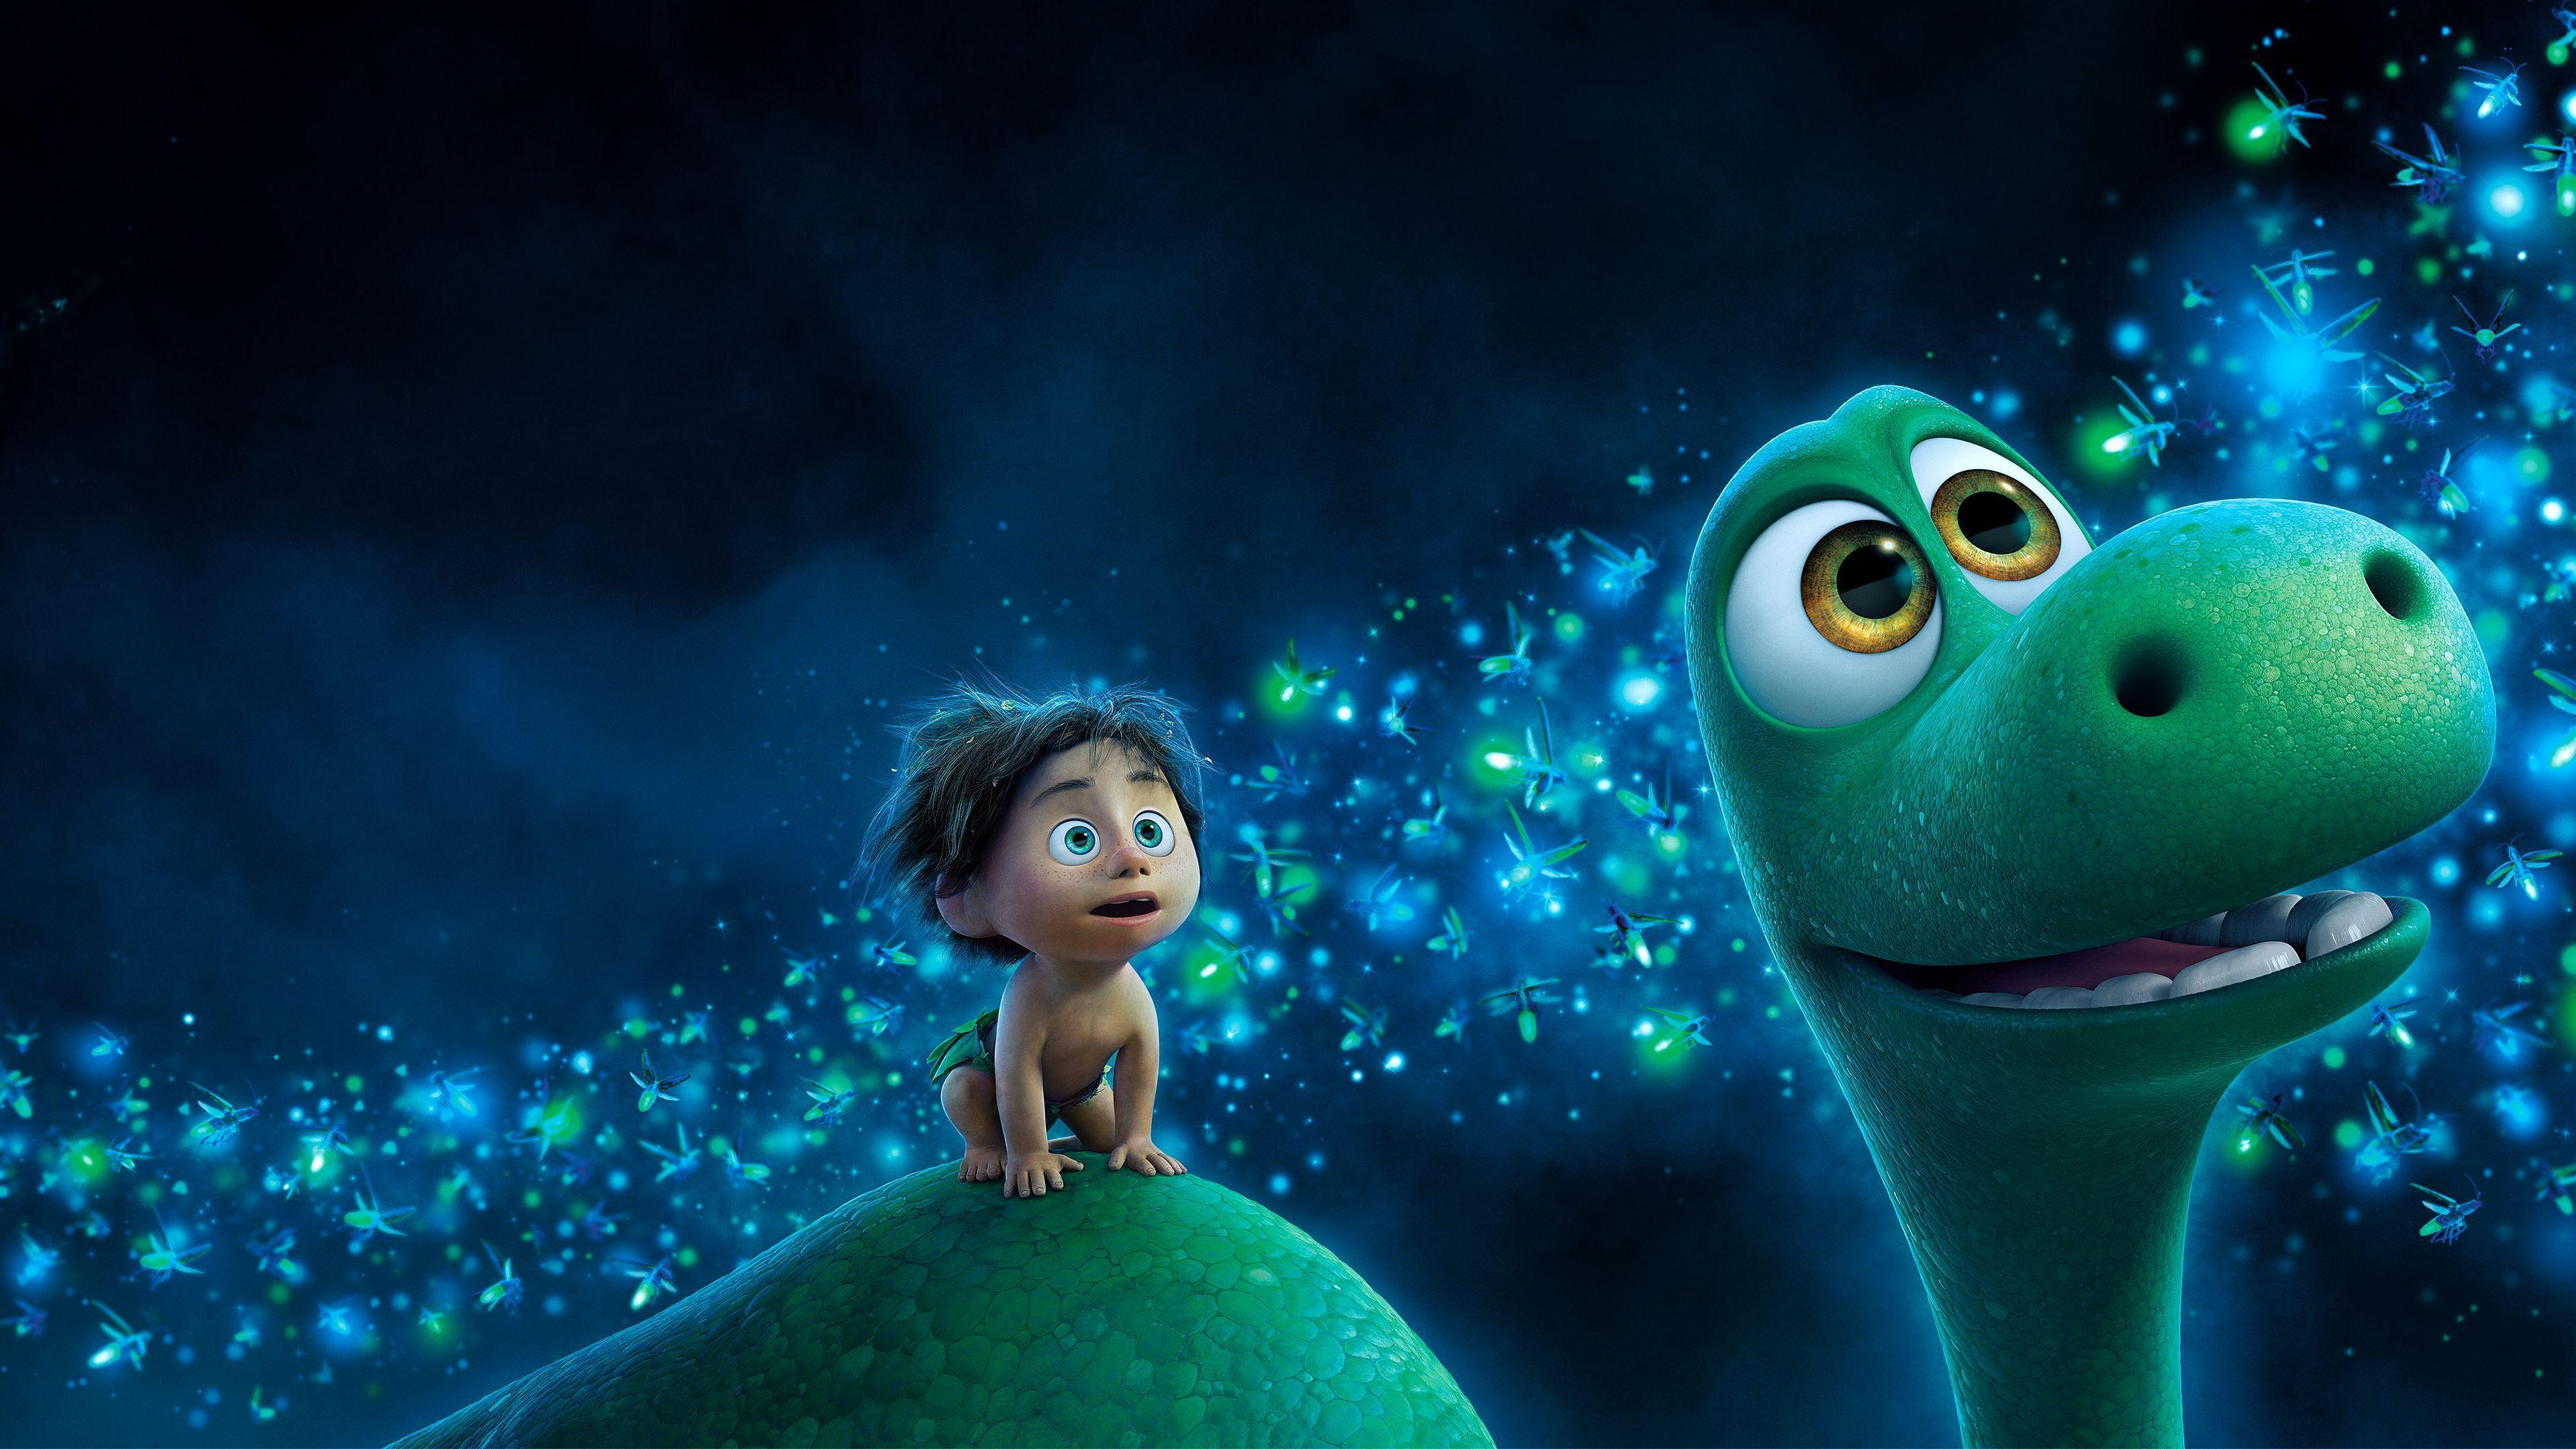 The Good Dinosaur Wallpapers - Top Free The Good Dinosaur Backgrounds -  WallpaperAccess